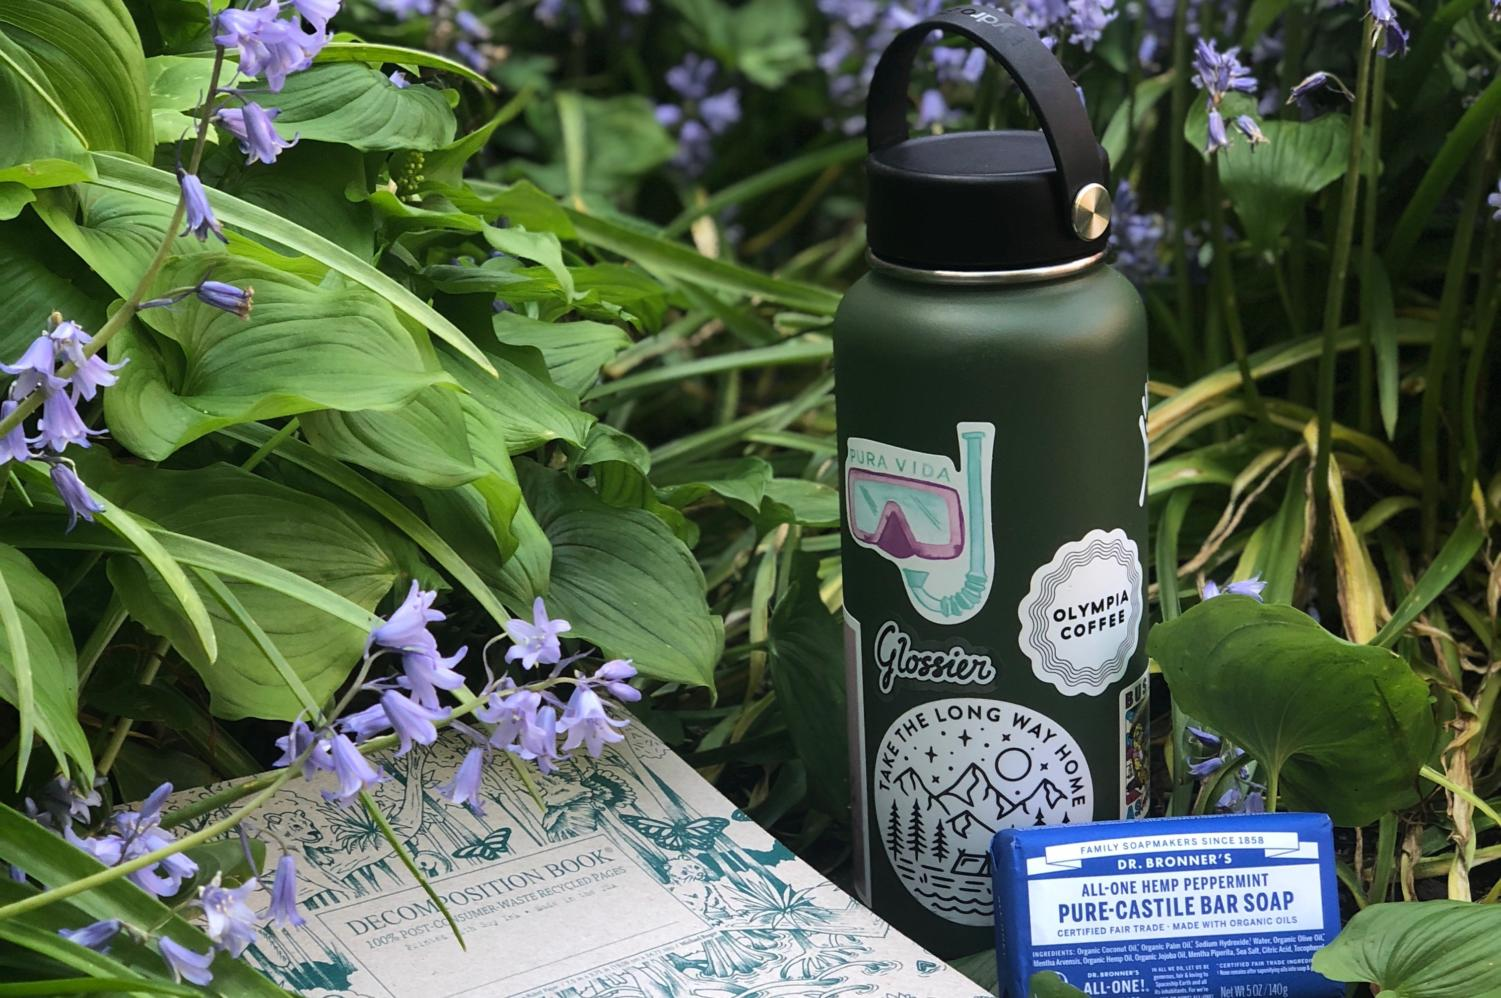 A decomposition notebook, Hydroflask and Dr. Bronner's bar soap are three environmentally friendly products.